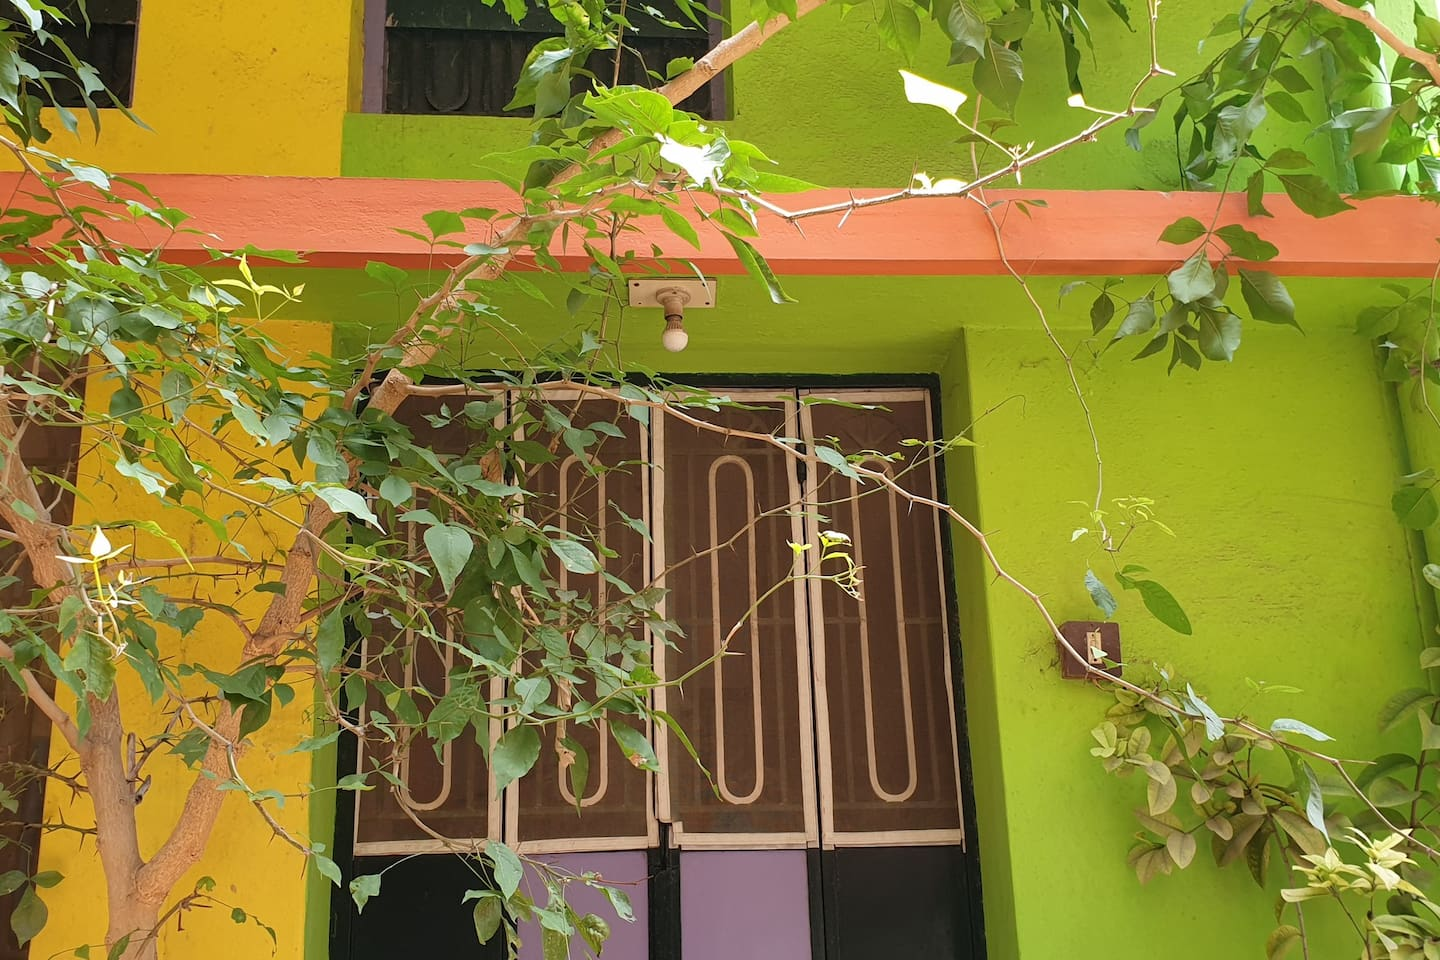 1 BHK house located close to meenakshi temple